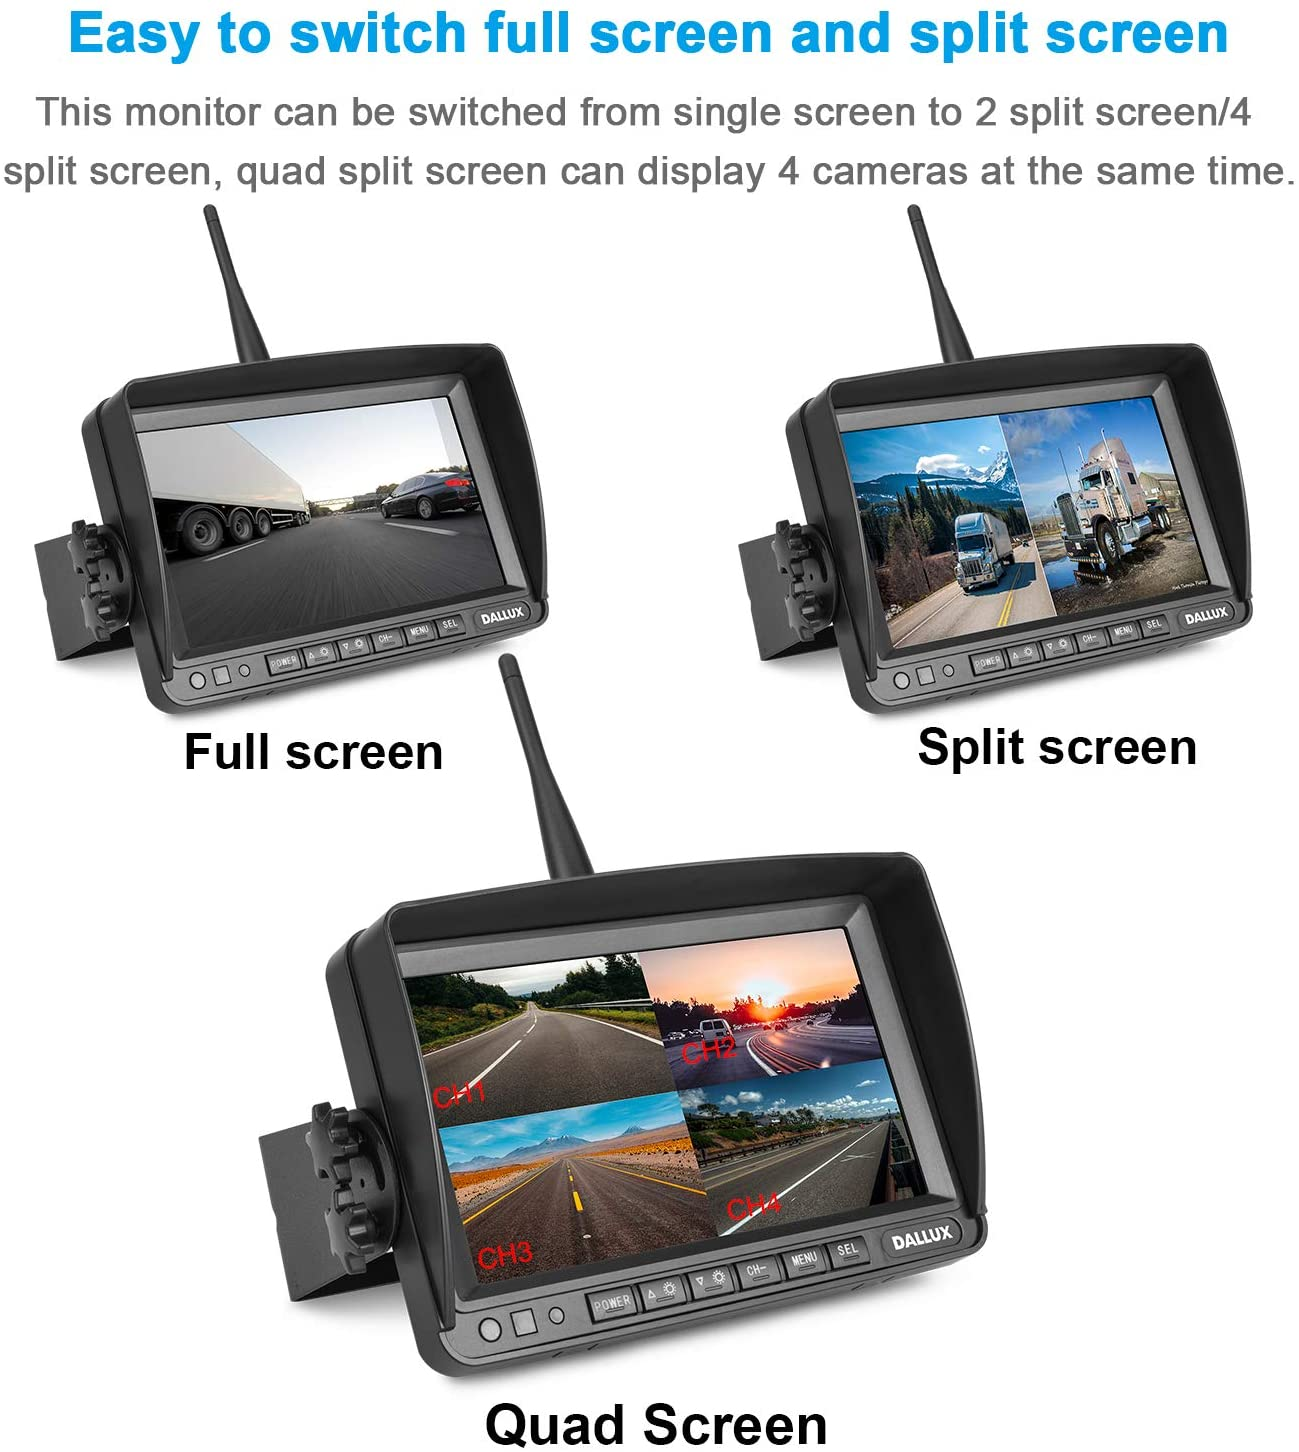 Digital Wireless Backup Camera Kit Niloghap Upgrade HD Observation System Van 7 inch Built-in DVR Monitor and Night Vision IP69 Waterproof Rear View Camera for Truck Farm RV Bus Trailer Pickup